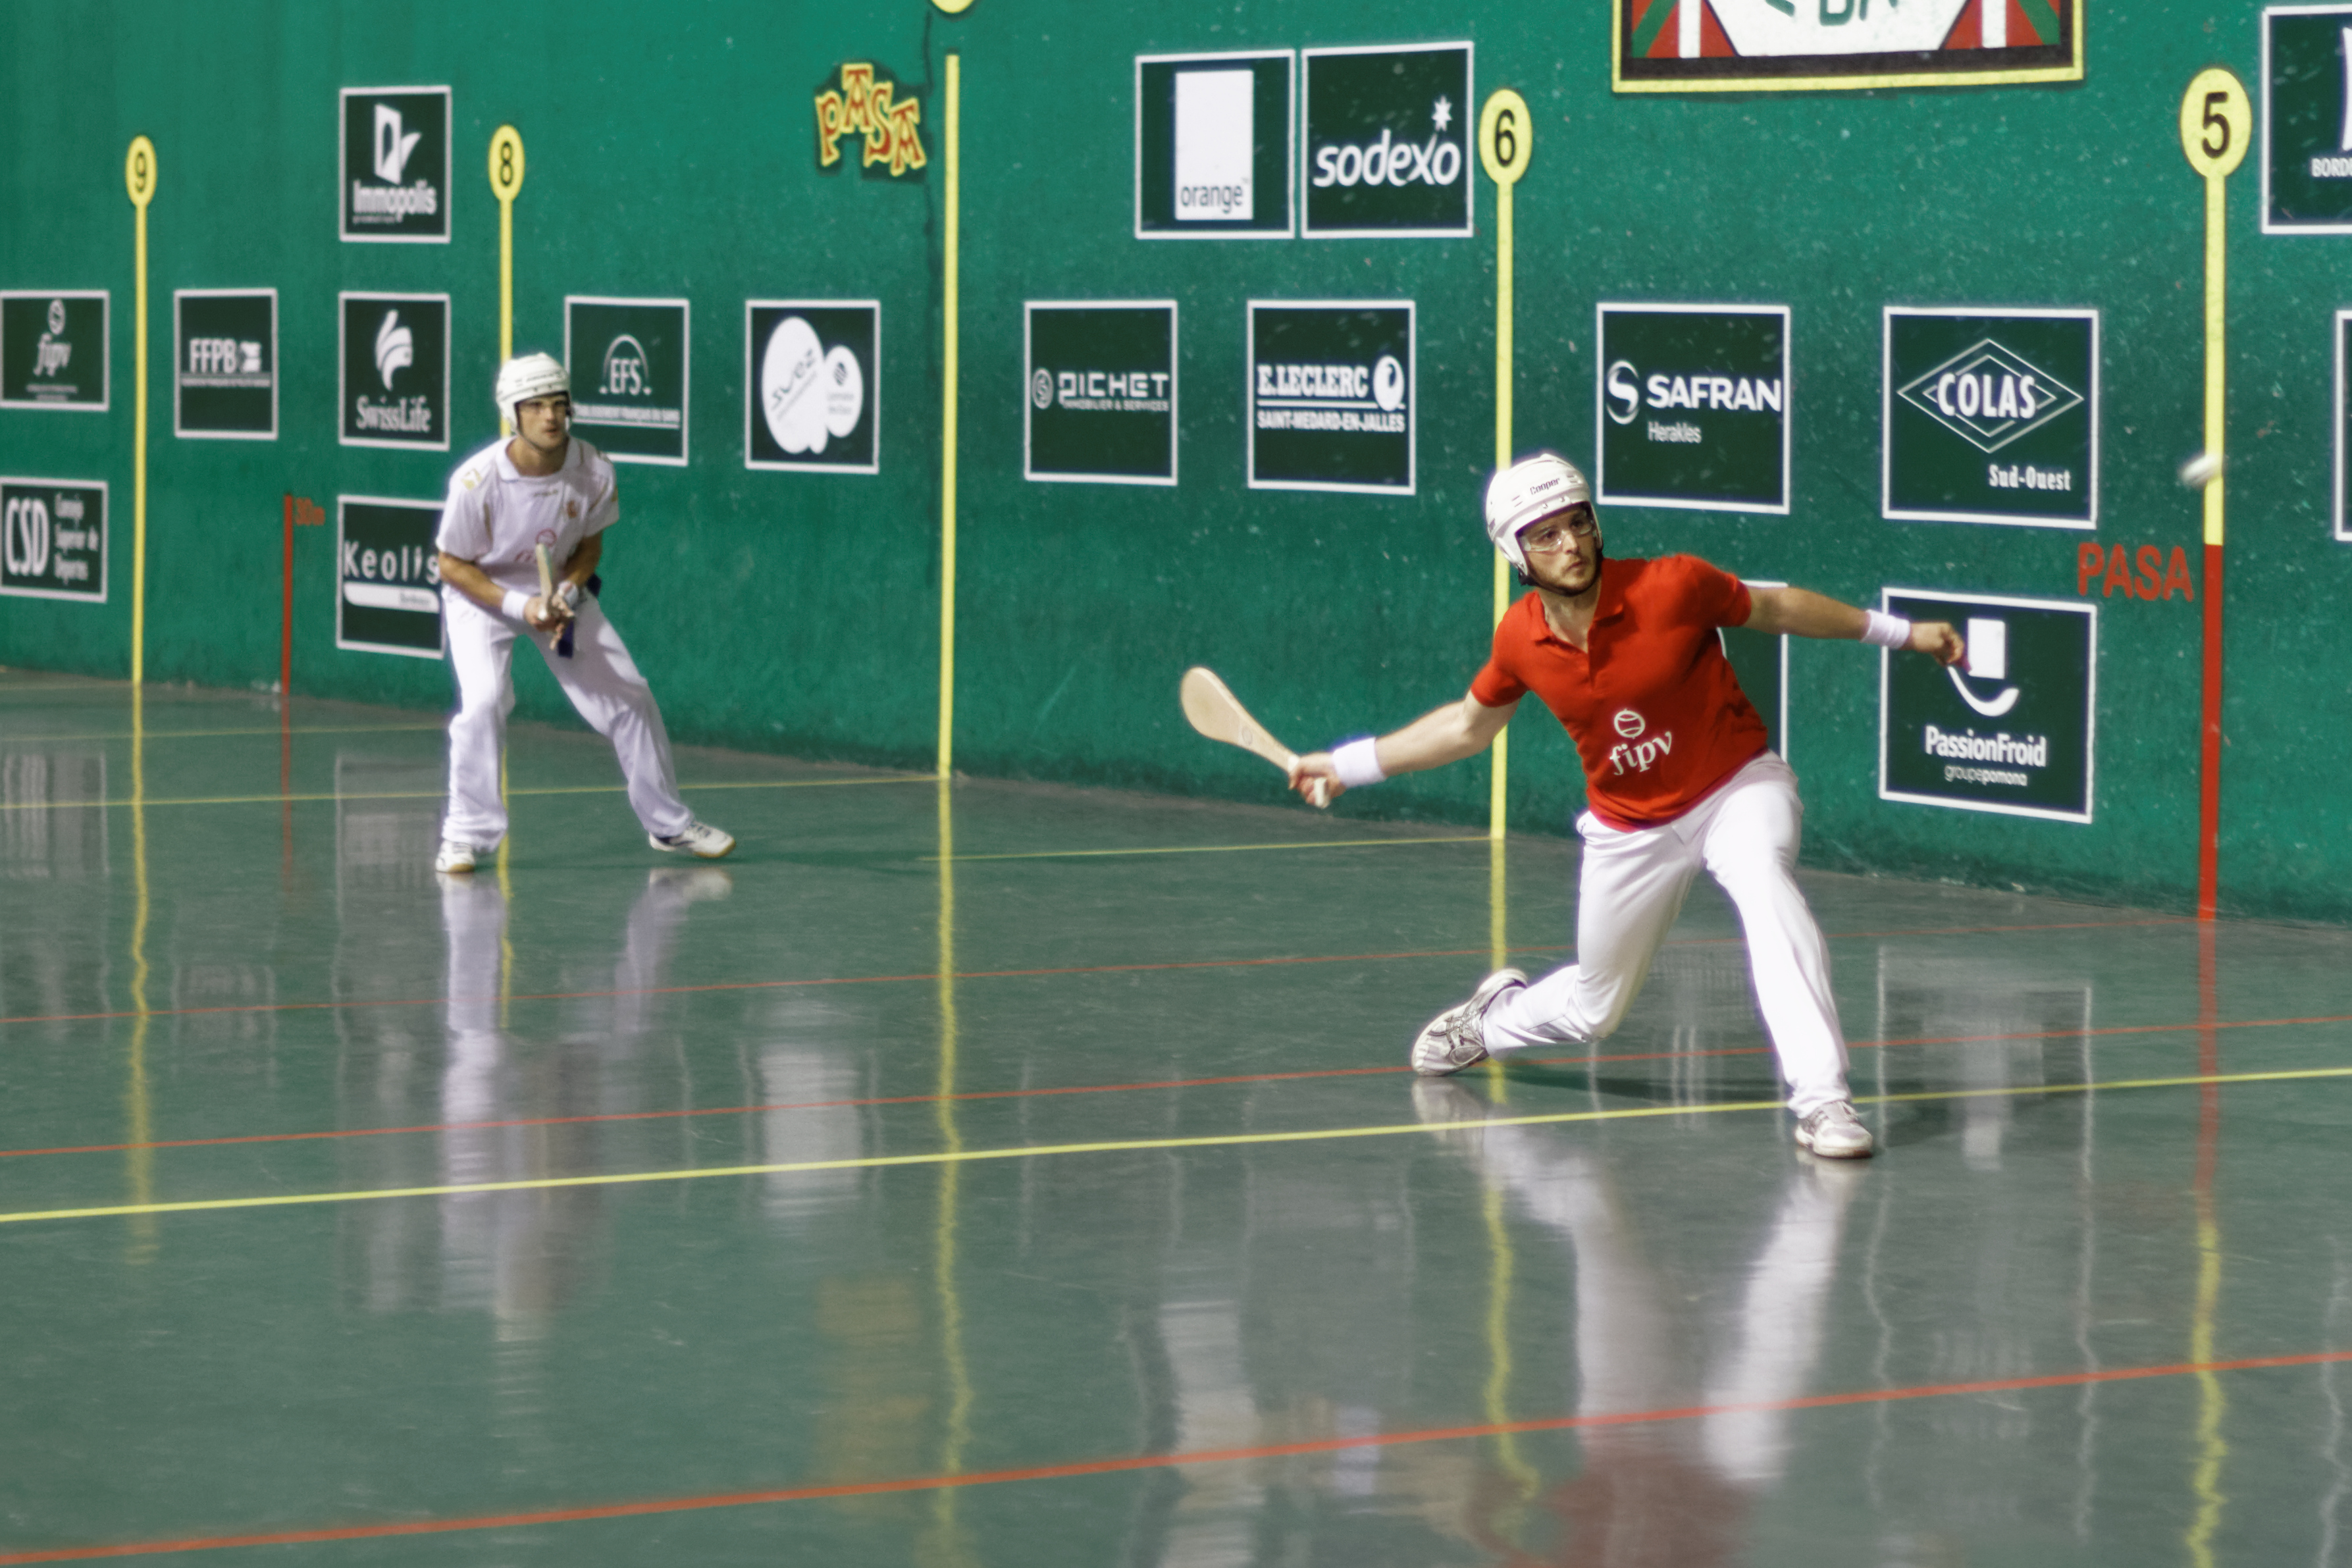 an overview of the jai alai ball in basque language A central concept in basque identity is belonging, not only to the basque people but to a house, known in the basque language as etxea pelota vasca (or basque ball), also known as jai alai, is the world's fiercest, noisiest, most claustrophobic ball game it is played against a high enclosed wall (or fronton), and has.